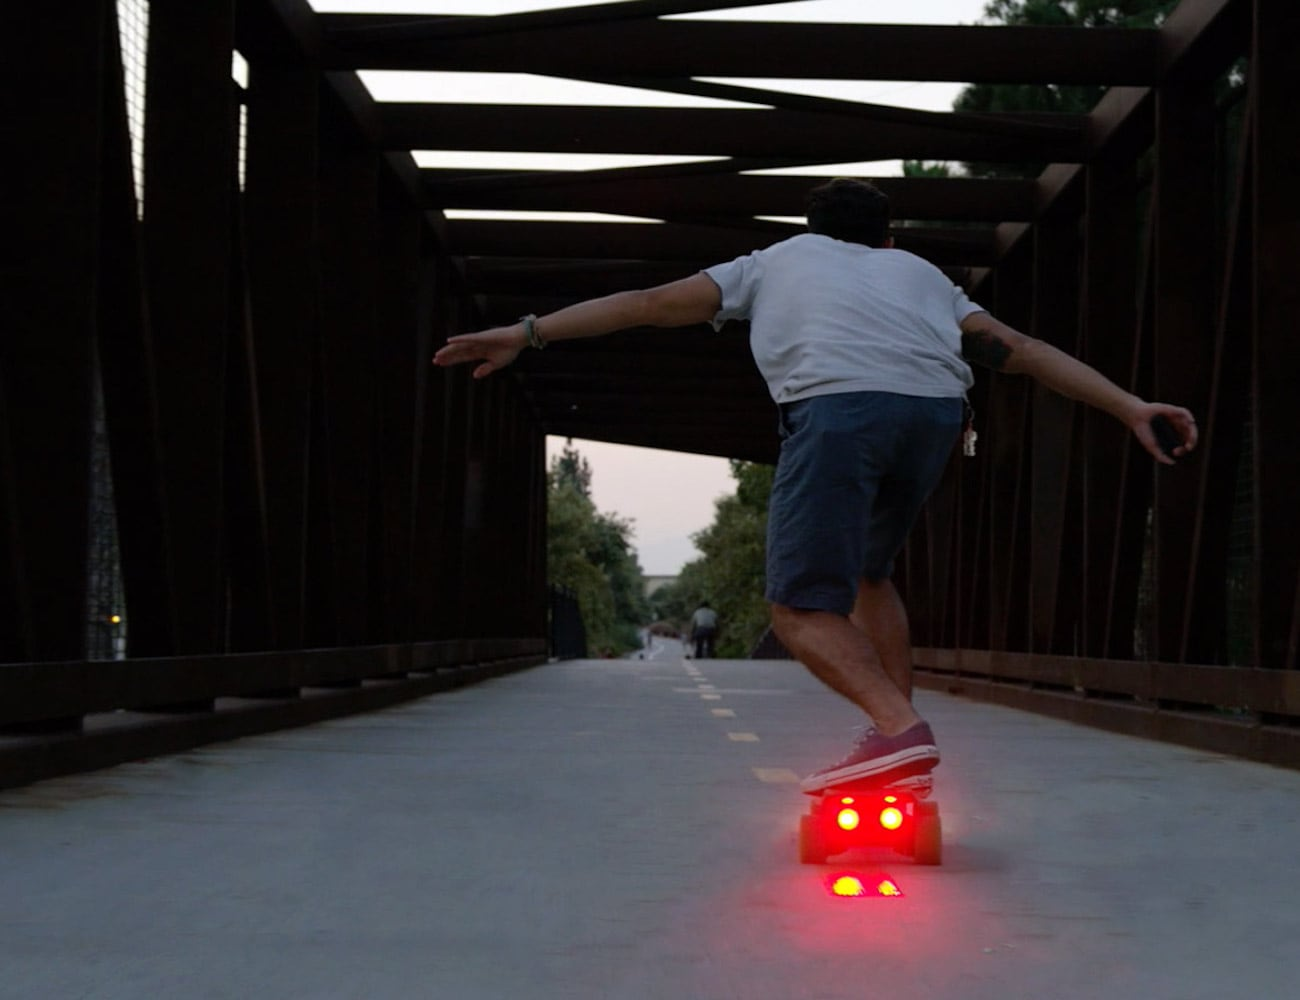 Riptide R1 Compact Electric Skateboard